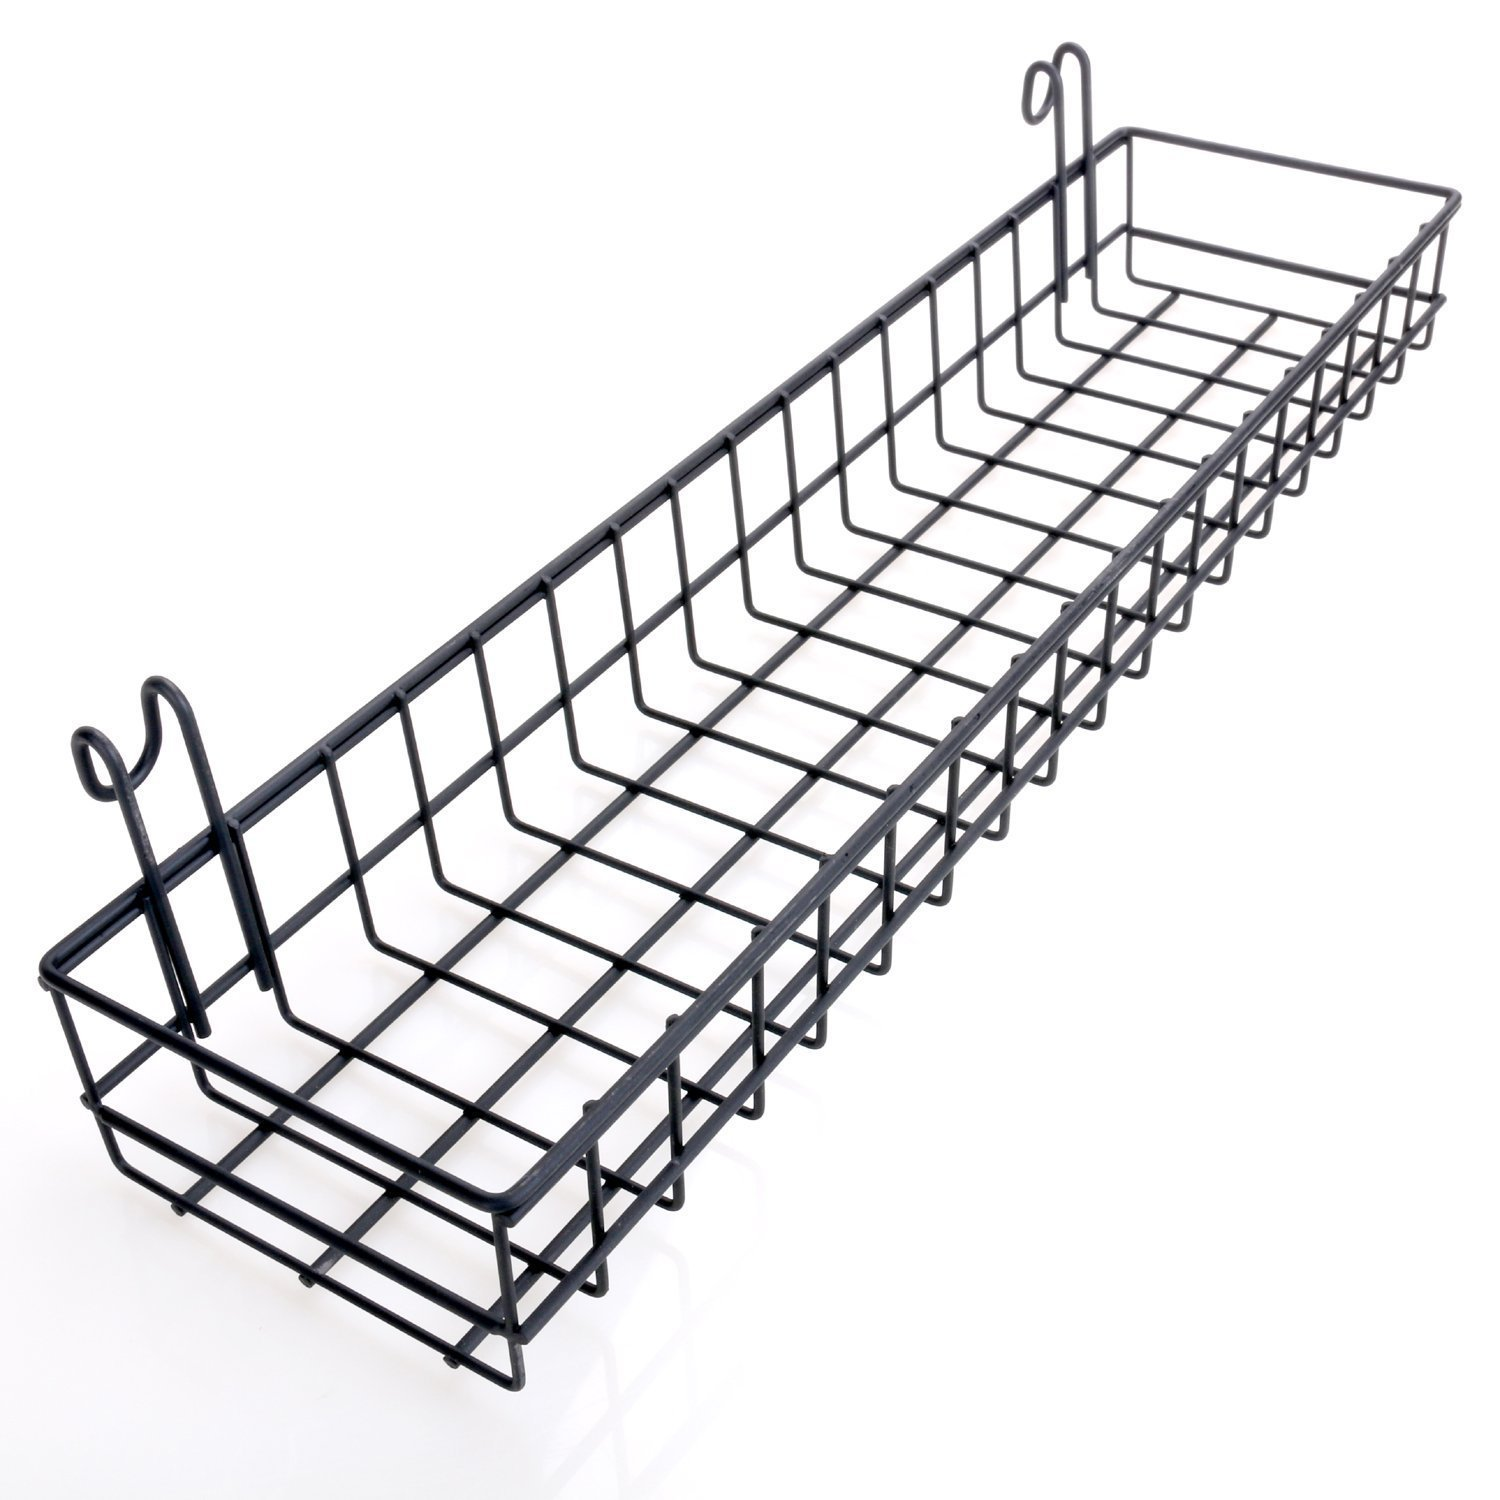 cheap wire mesh wall mount find wire mesh wall mount deals on line Camera Spy hosal multipurpose mesh wall metal wire basket grid panel hanging tray wall mount anizer